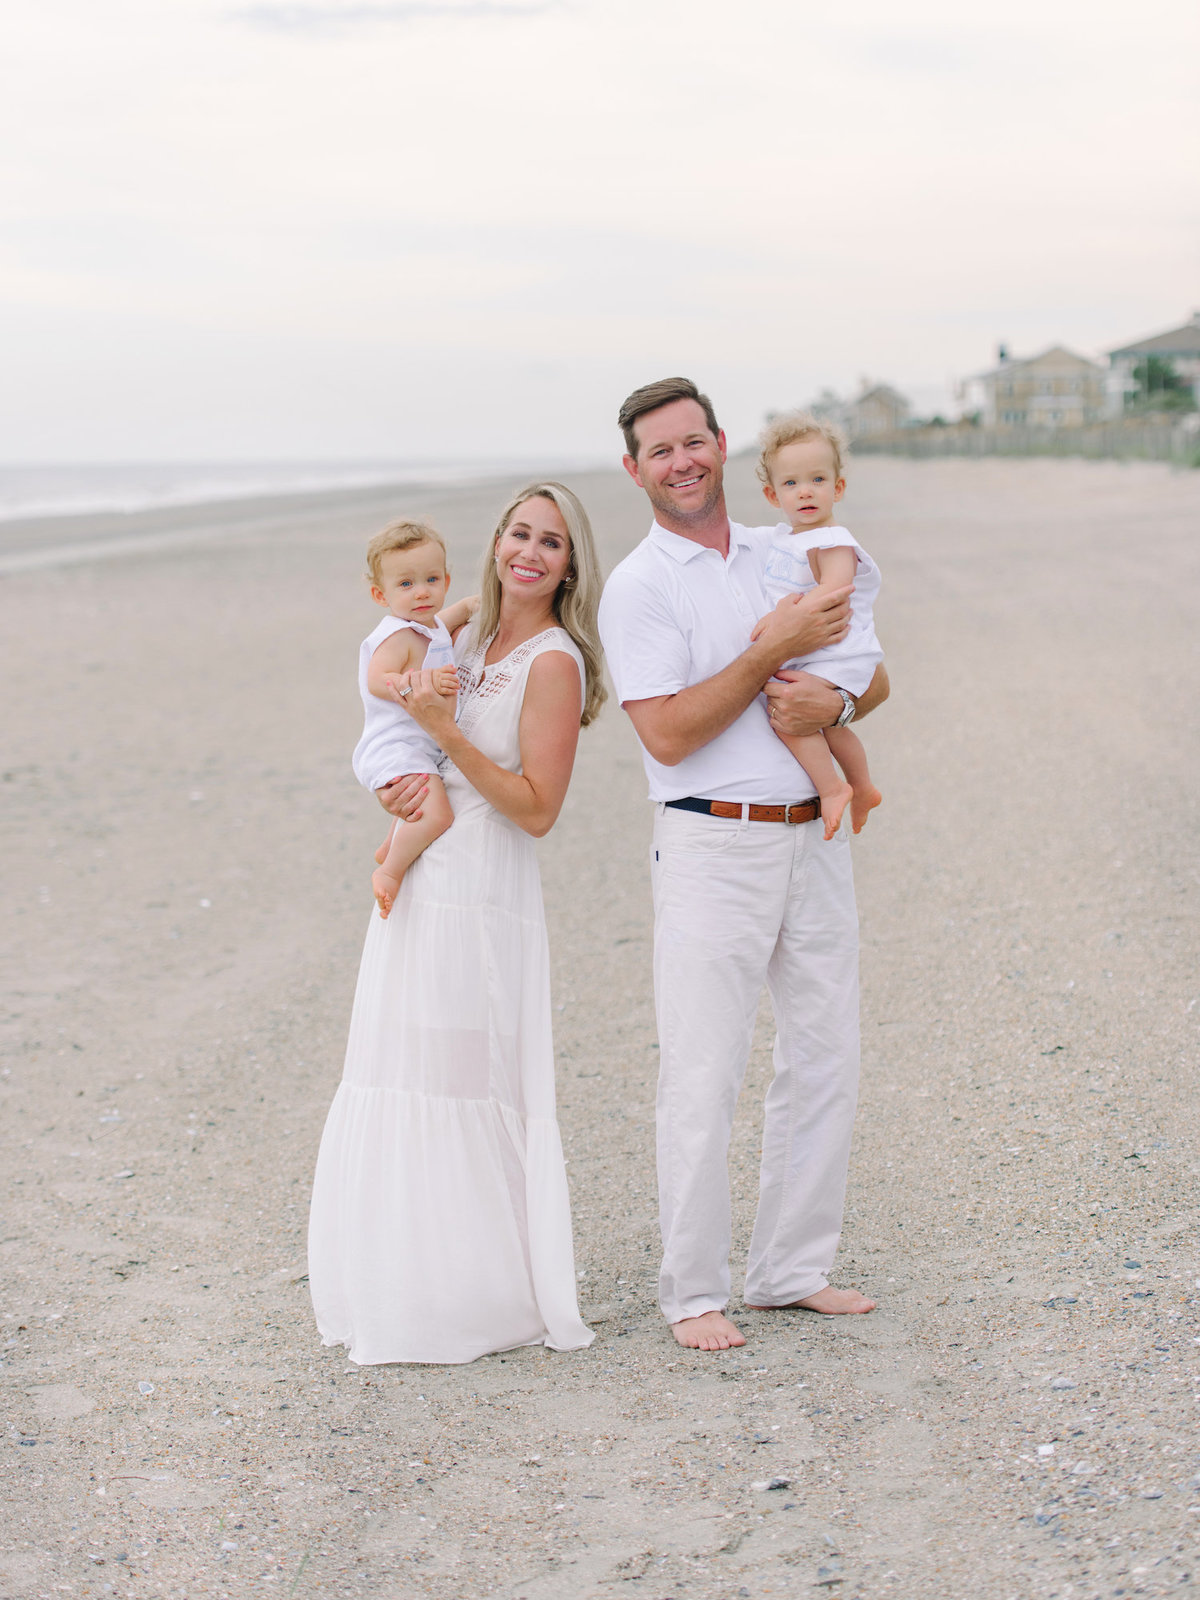 Debordieu Beach Family Photos in Georgetown, SC by Pasha Belman Photographers